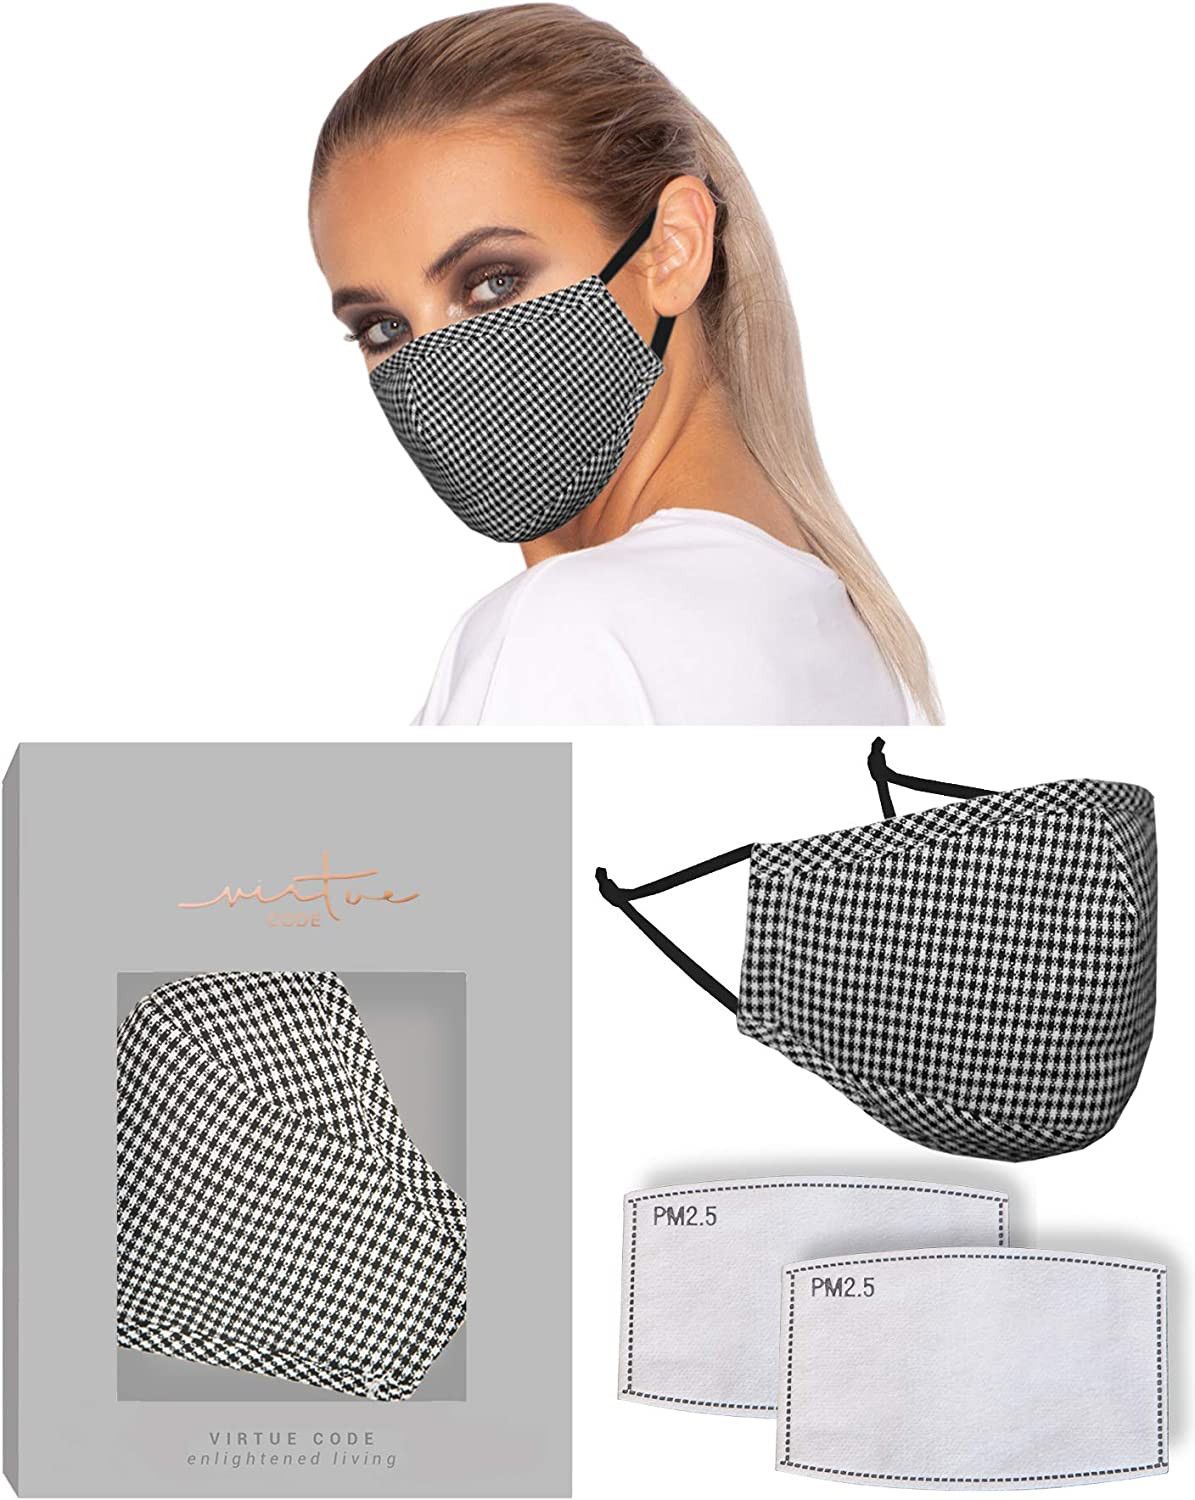 The Solution Mask in Black White Checks by VIRTUE CODE Fabric Face Masks 1 Mask 2 Filters